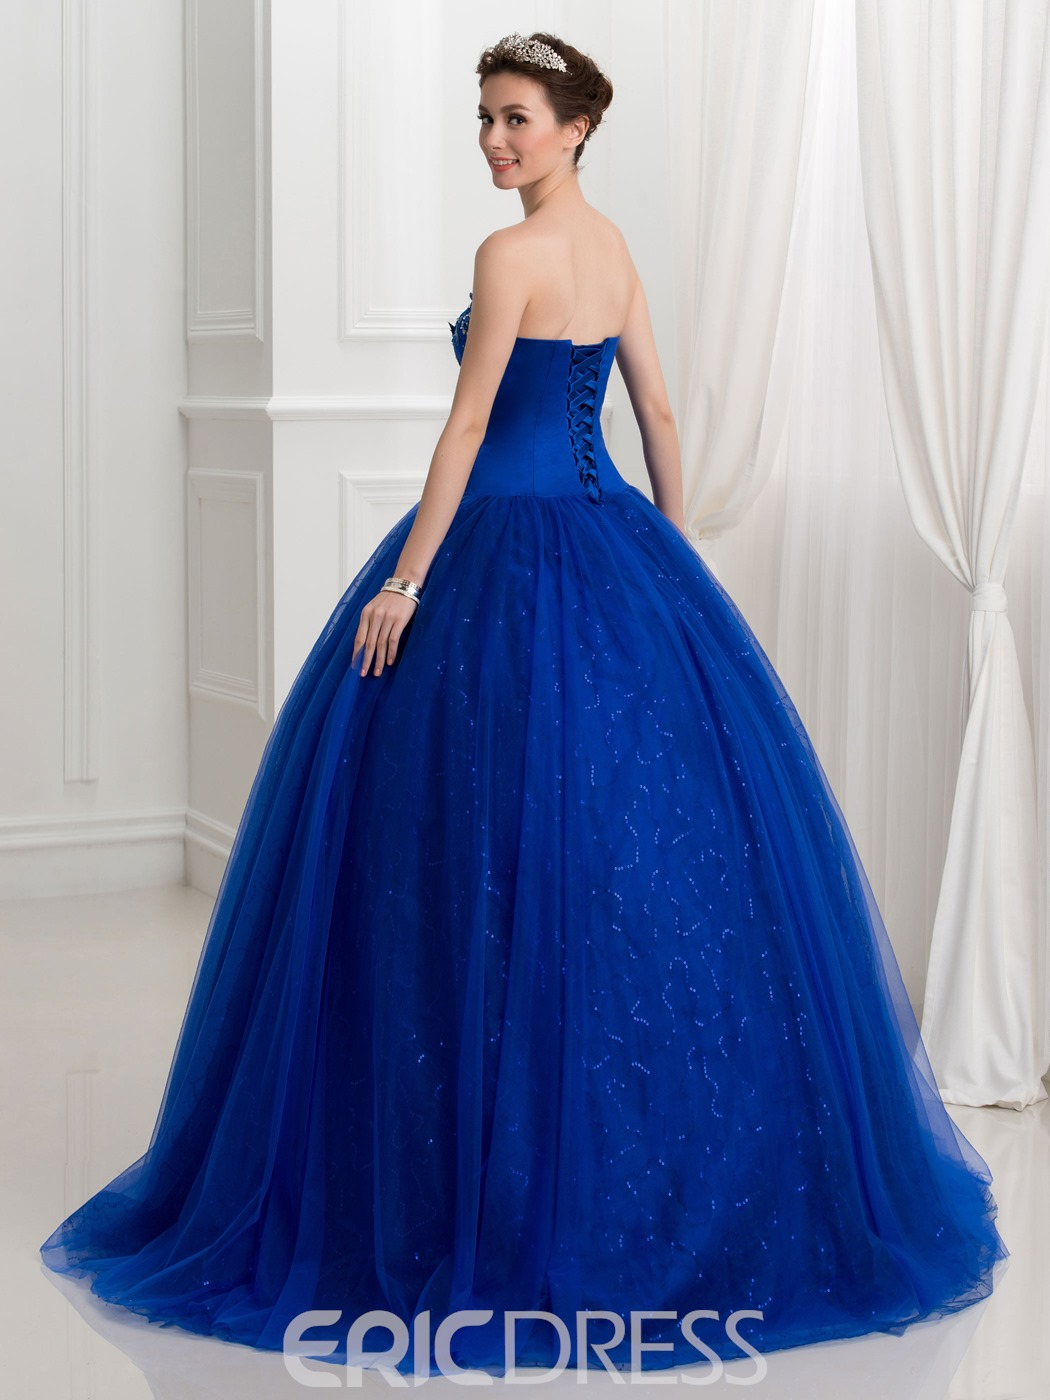 Ericdress Sweetheart Appliques Beading Sequins Ball Gown Quinceanera Dress